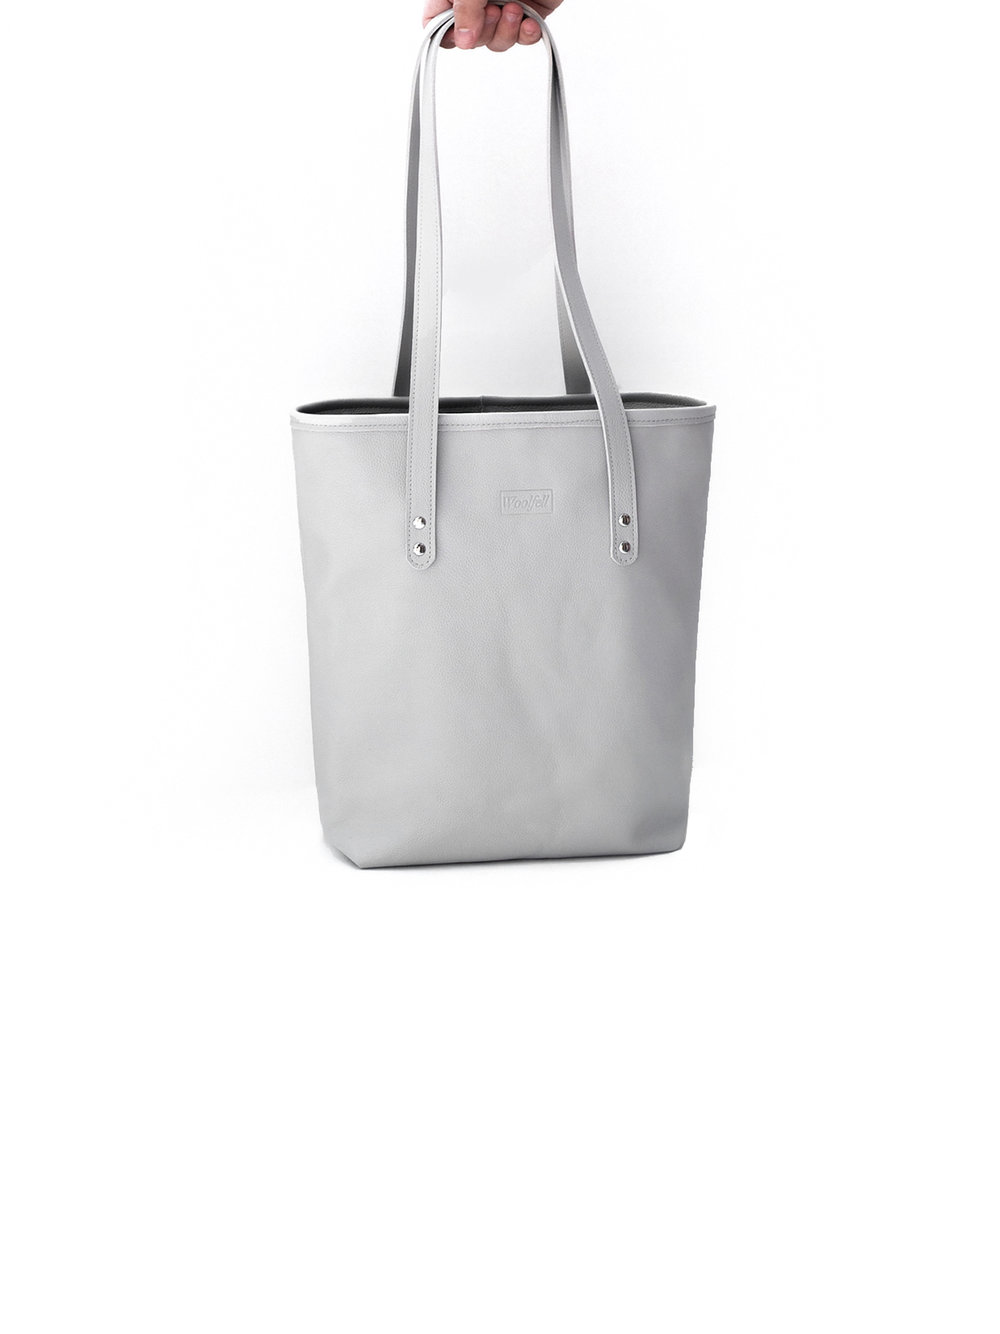 Leather tote bag - more colors available180.00$